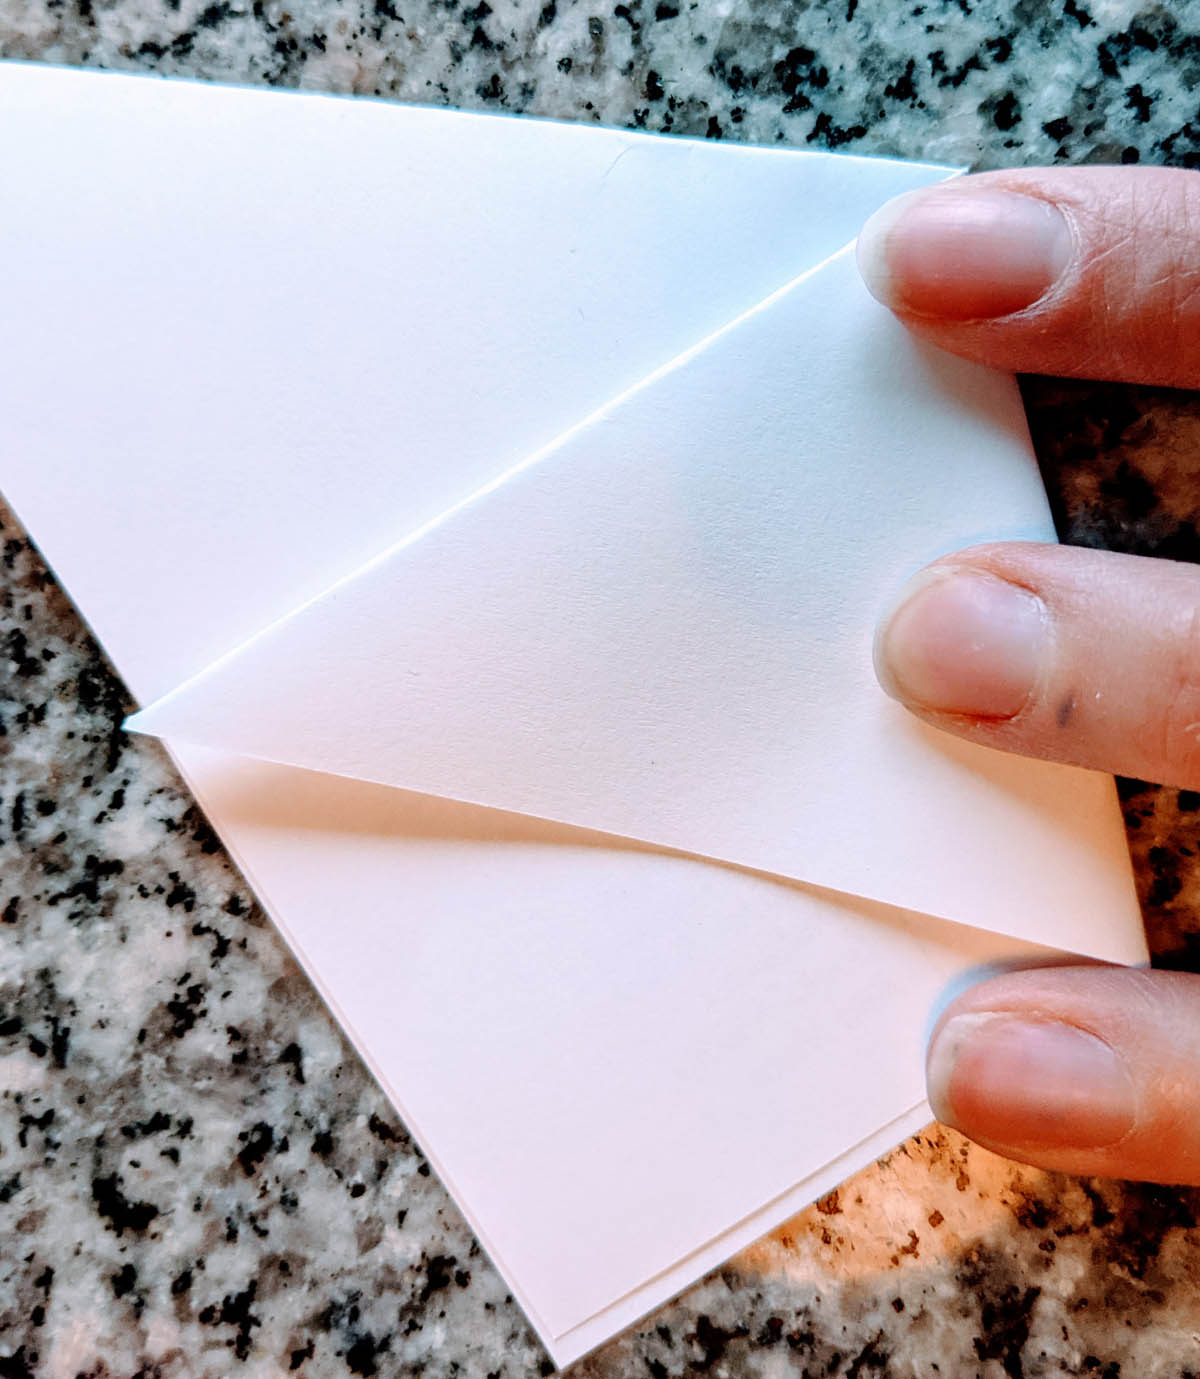 Folding an origami cup to use as a seed envelope